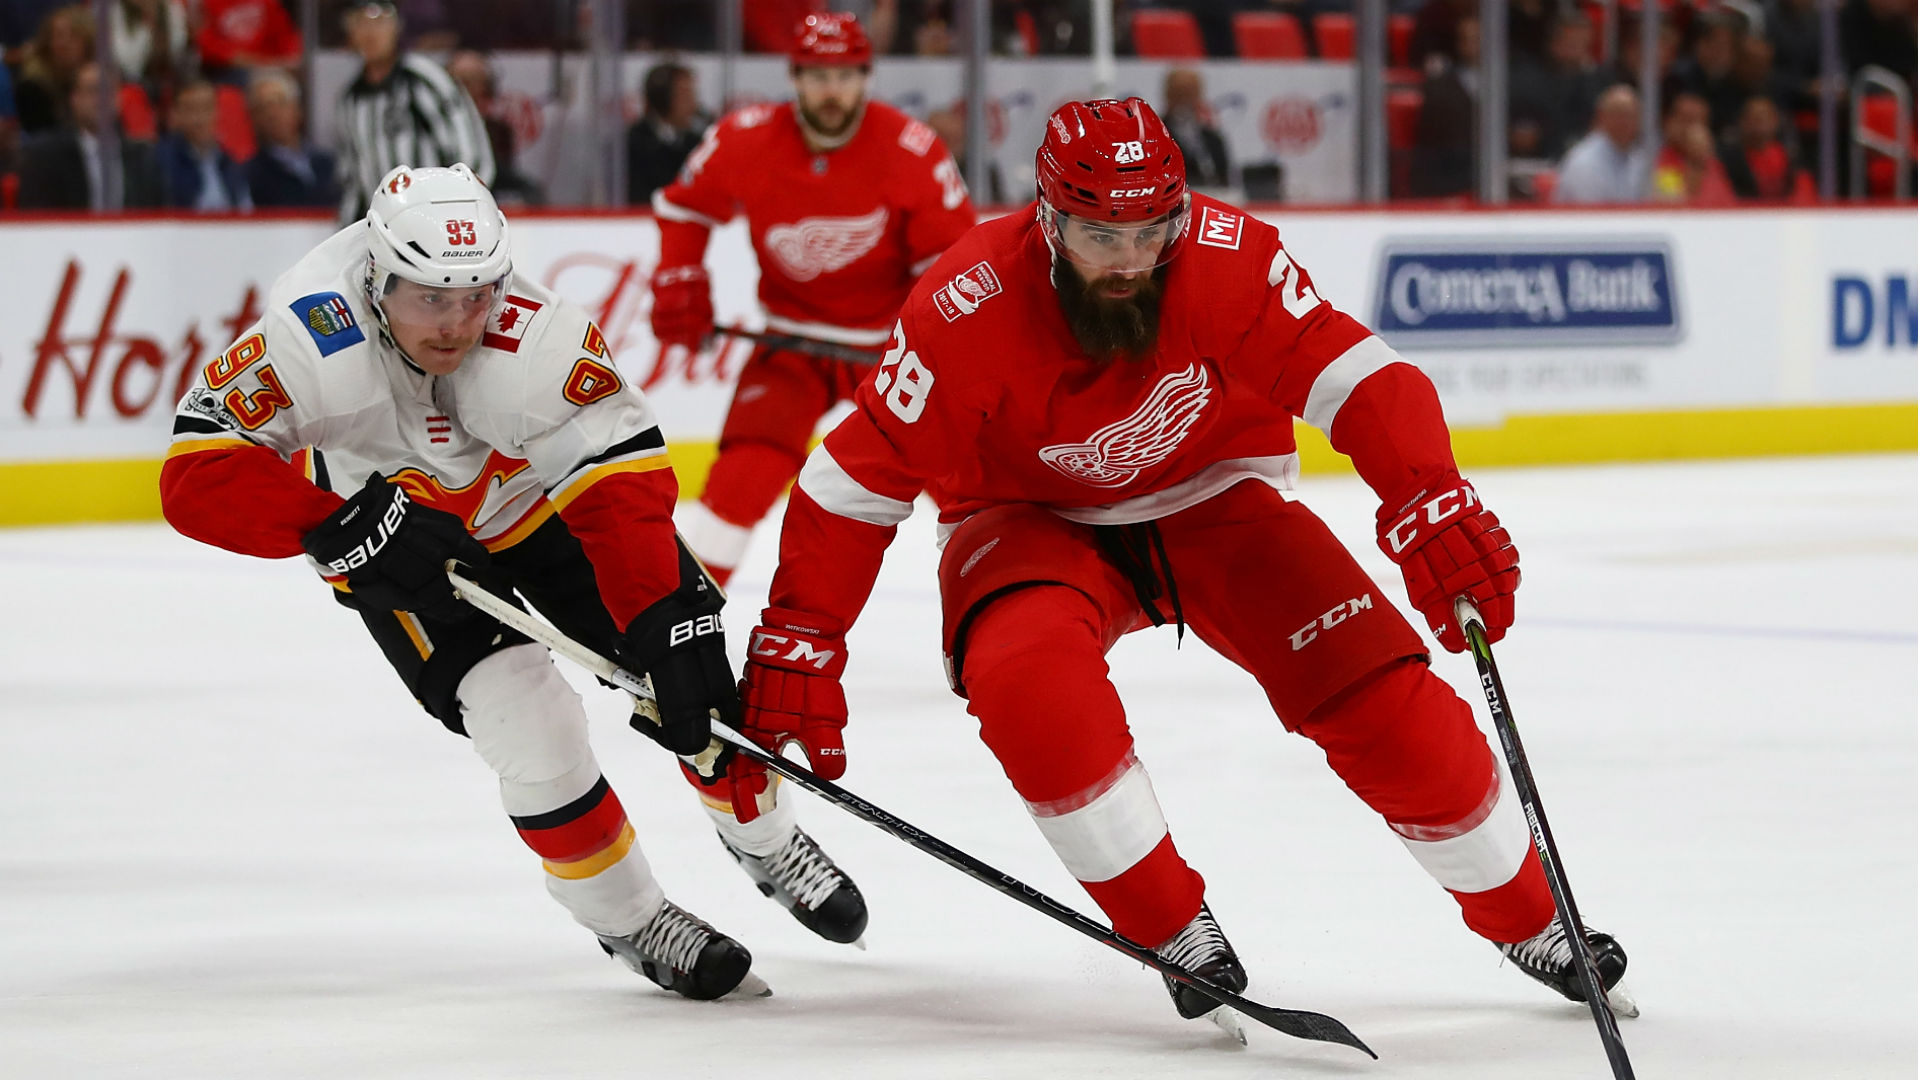 Luke Witkowski suspended for role in Red Wings brawl